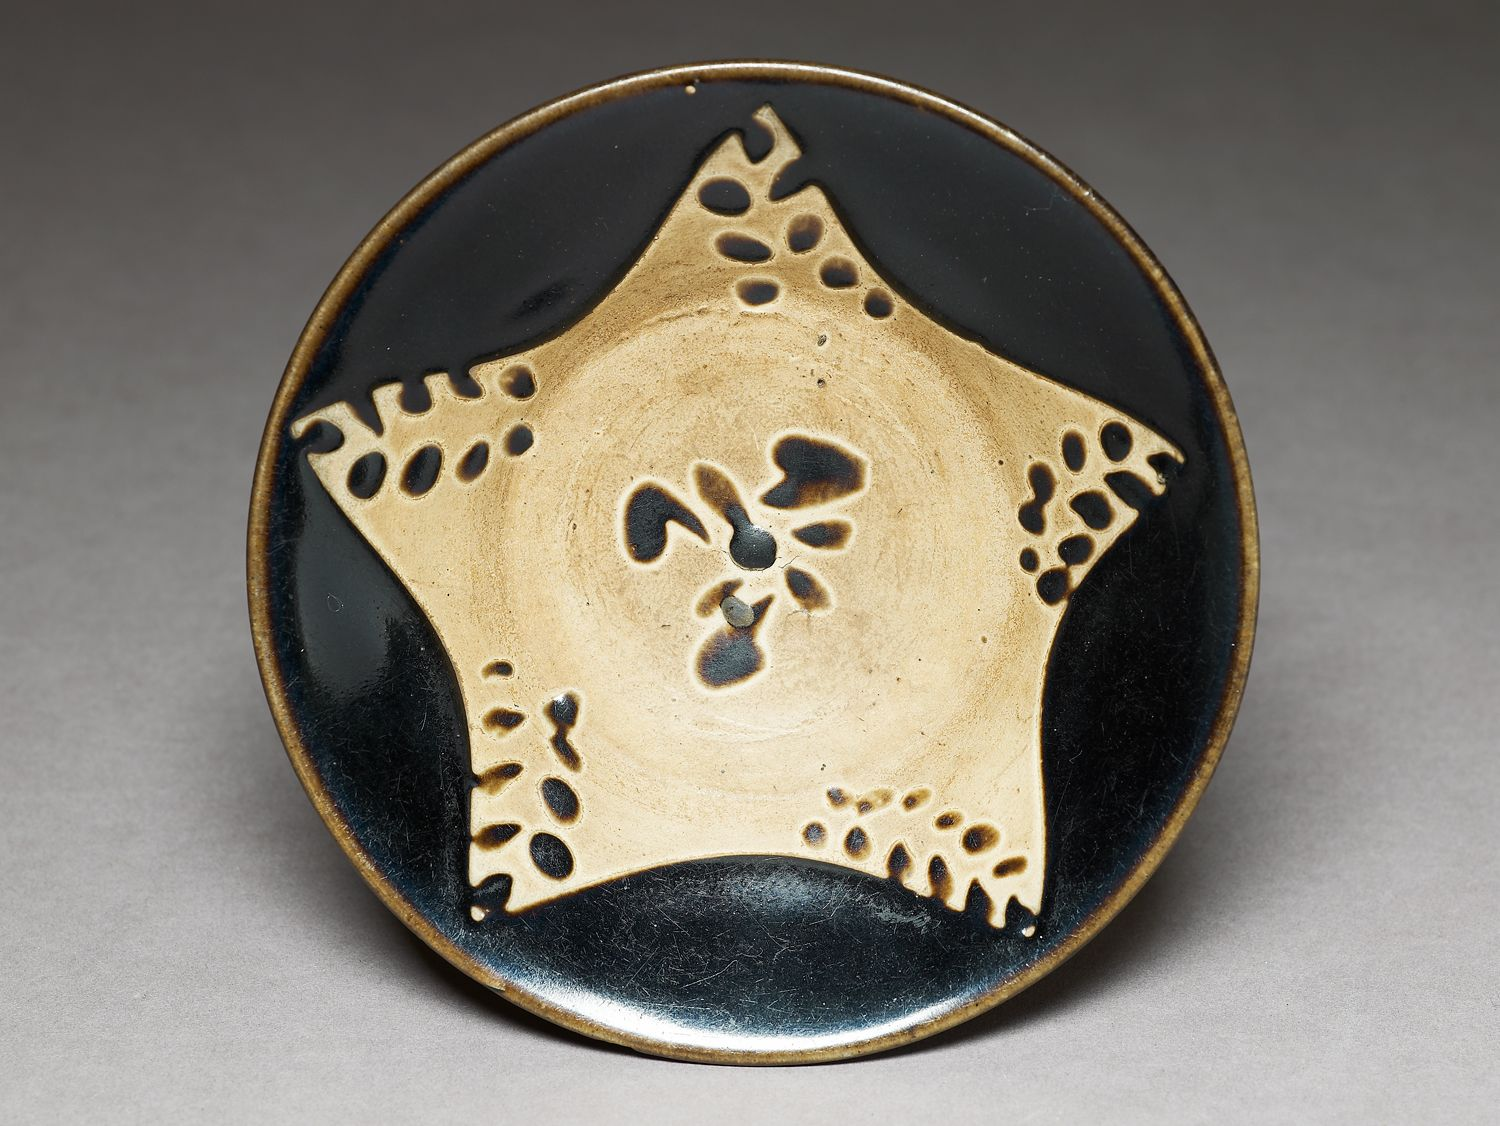 Ashmolean Advent Calendar Day 9 - Star on a black ware bowl - Yaozhou kilns, China, 11th Century - EA1956.1427 © Ashmolean Museum - Read more, and see similar objects, at: http://jameelcentre.ashmolean.org/object/EA1956.1427